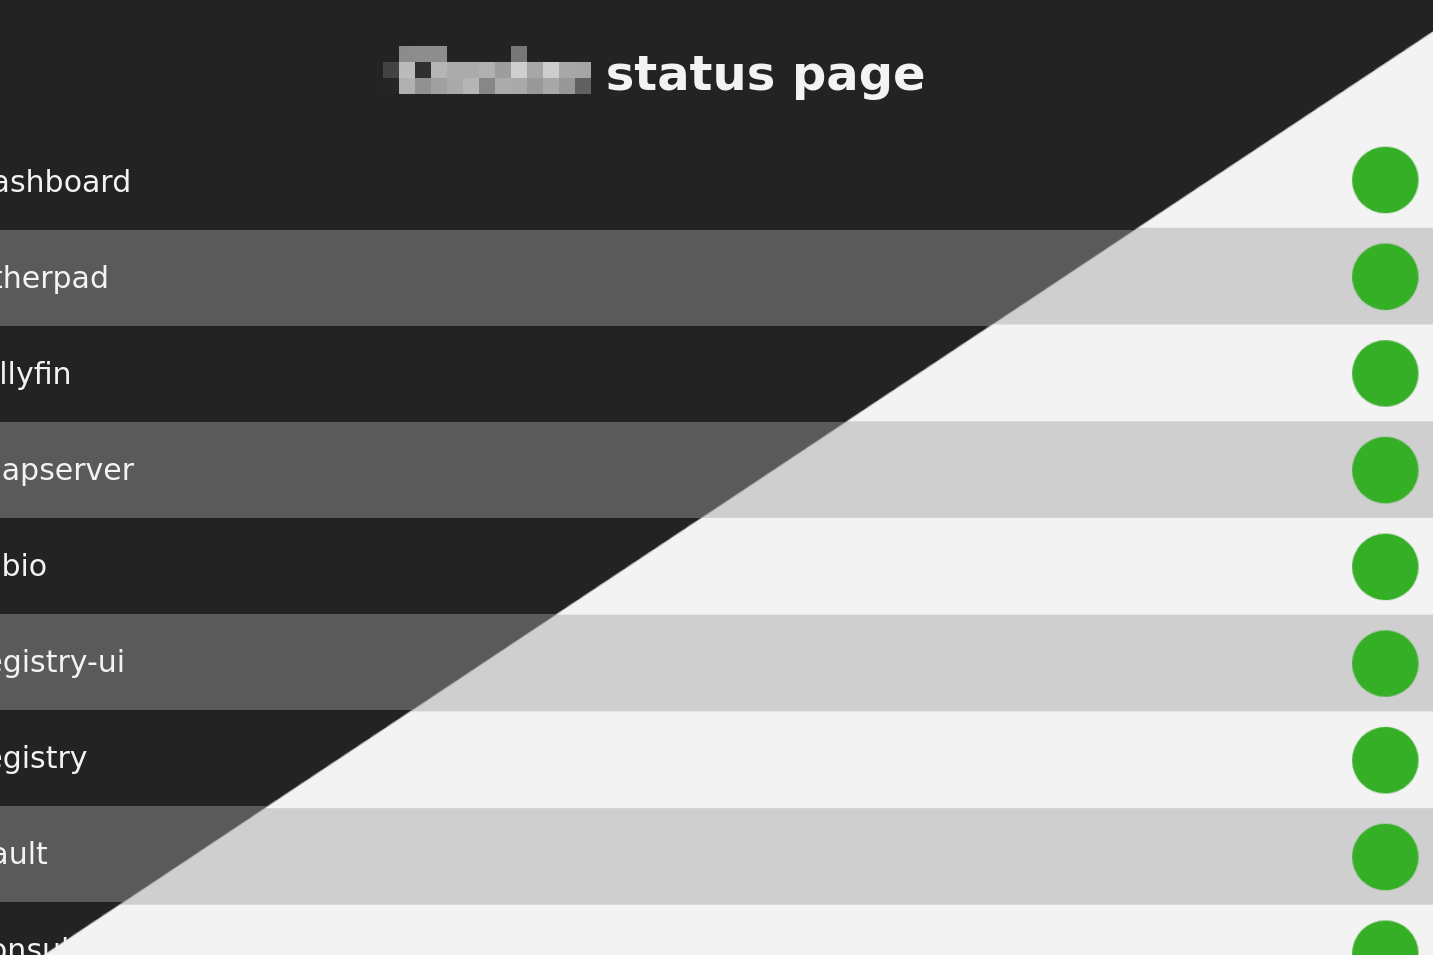 Public-facing consul-backed Consul status page